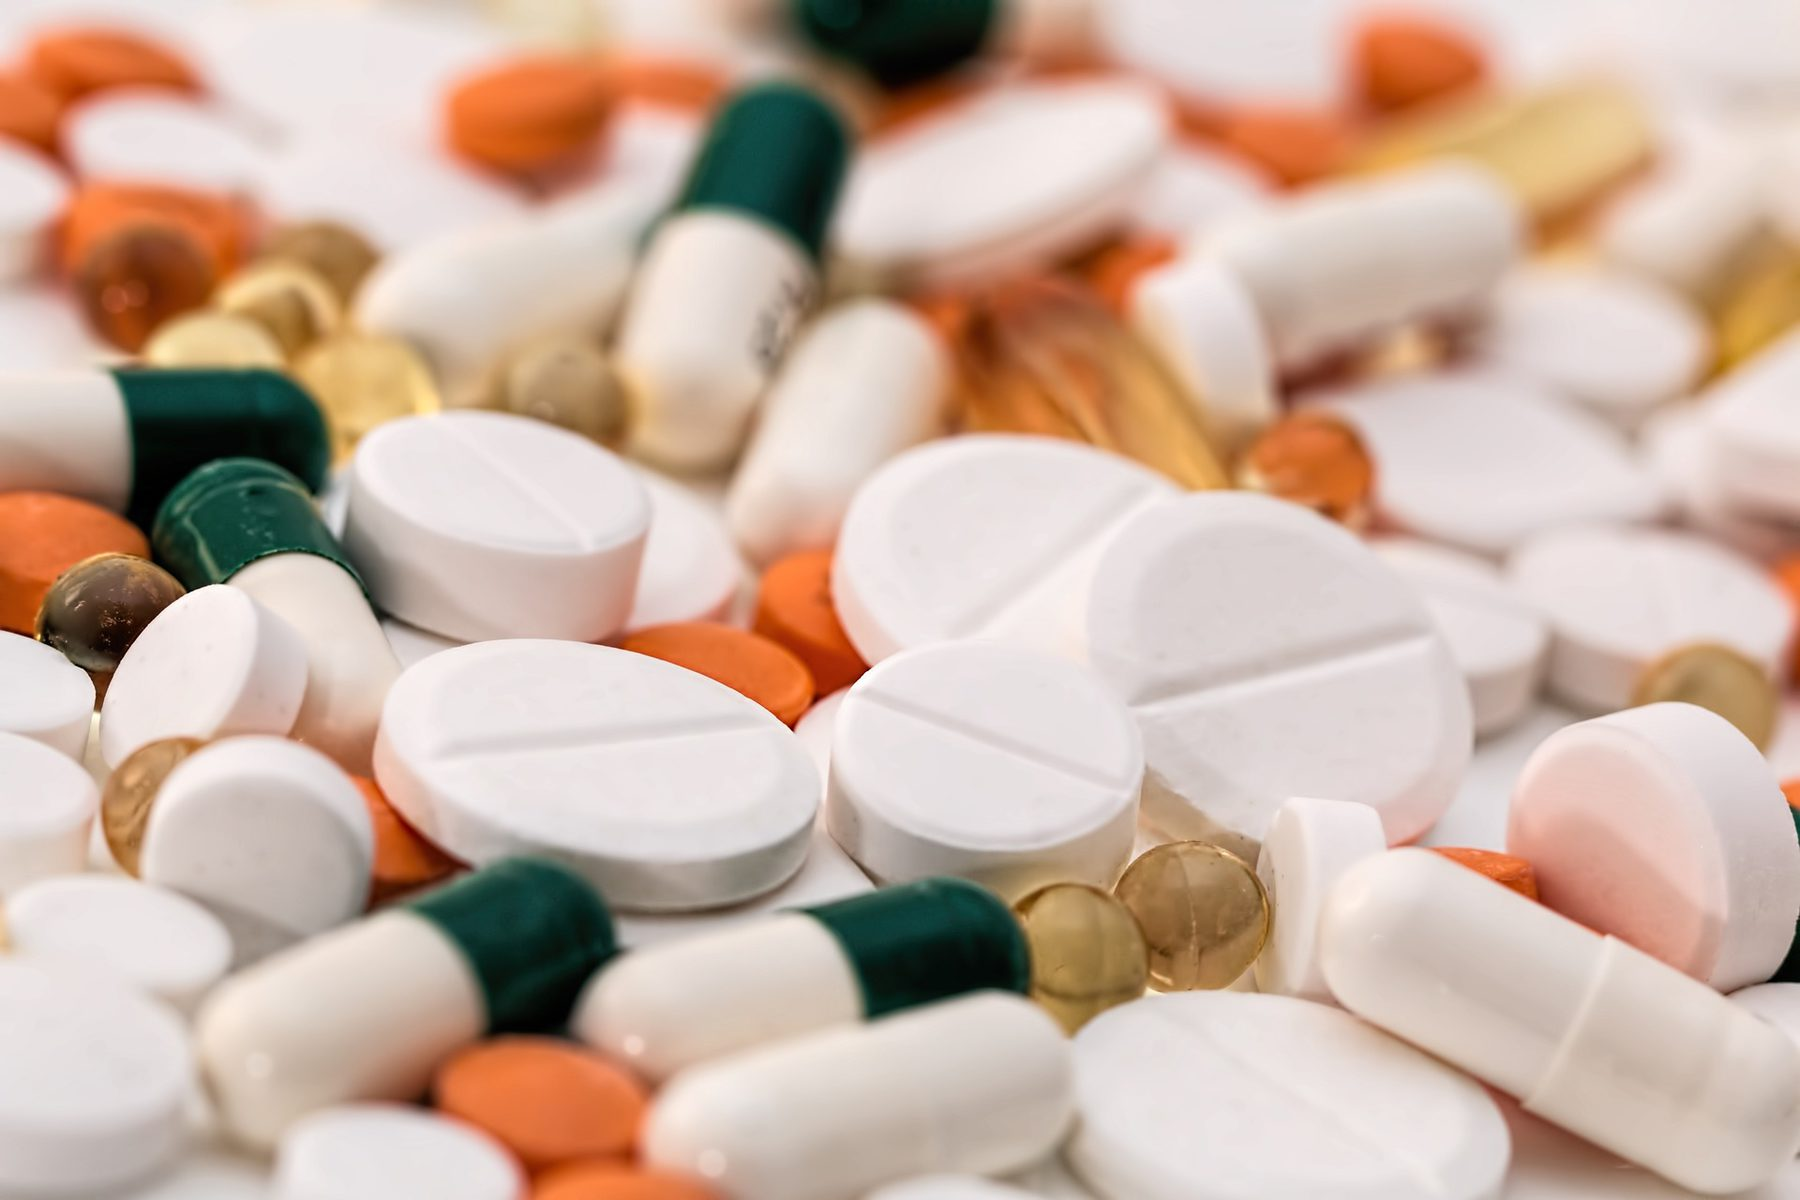 Pharmaceuticals (Sector Header: Pills and Capsules)